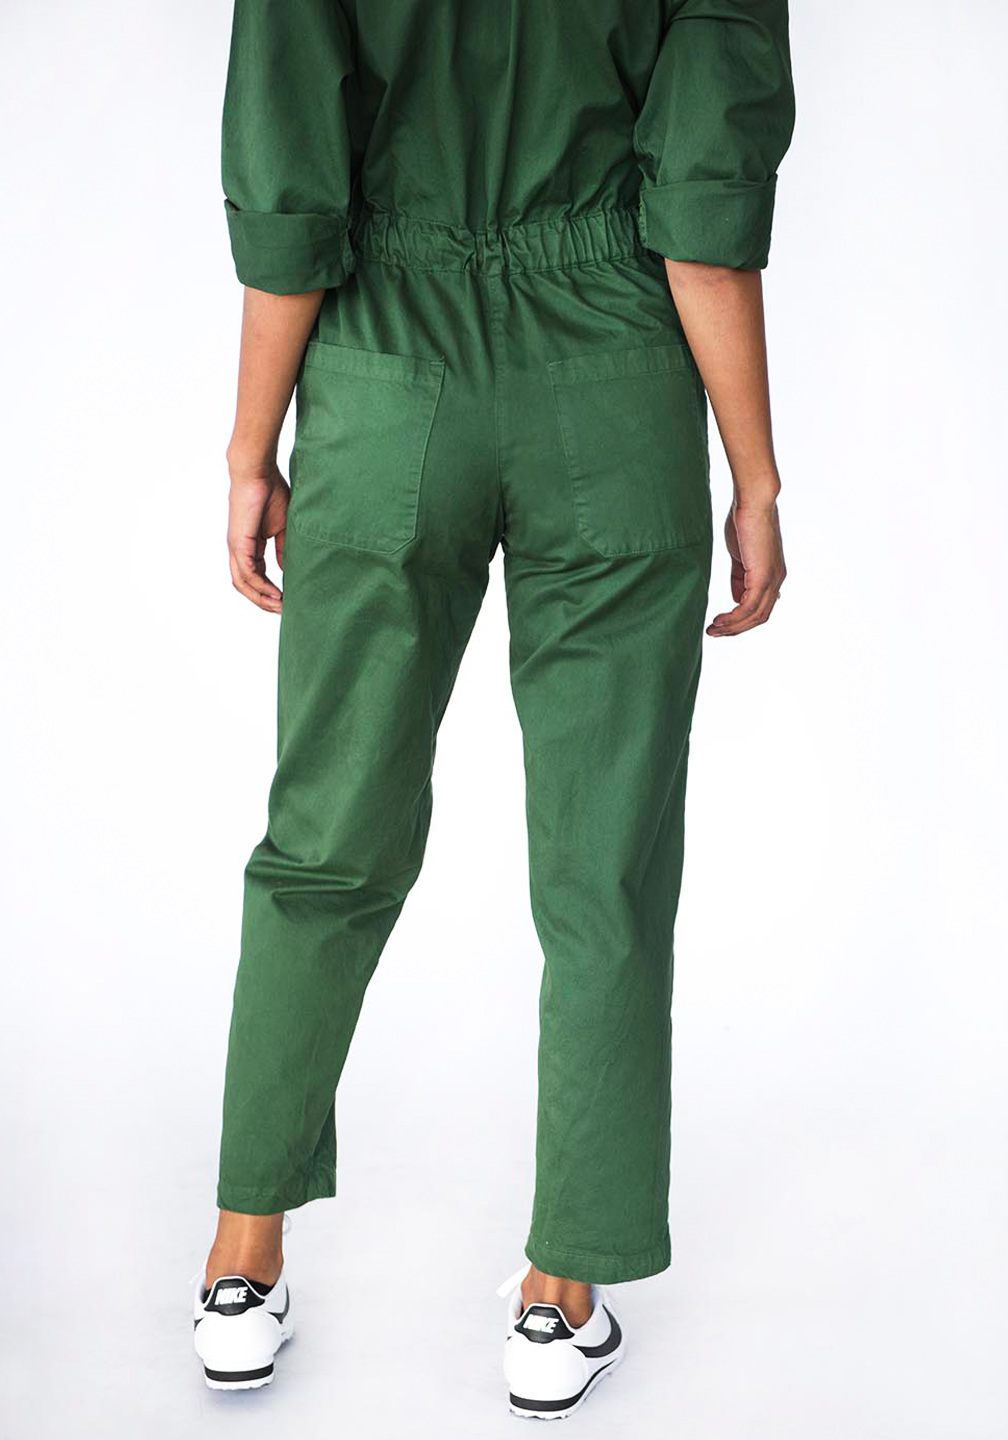 Margot_and_Ed_All_In_Flightsuit_Native_Green_Rotator_Back